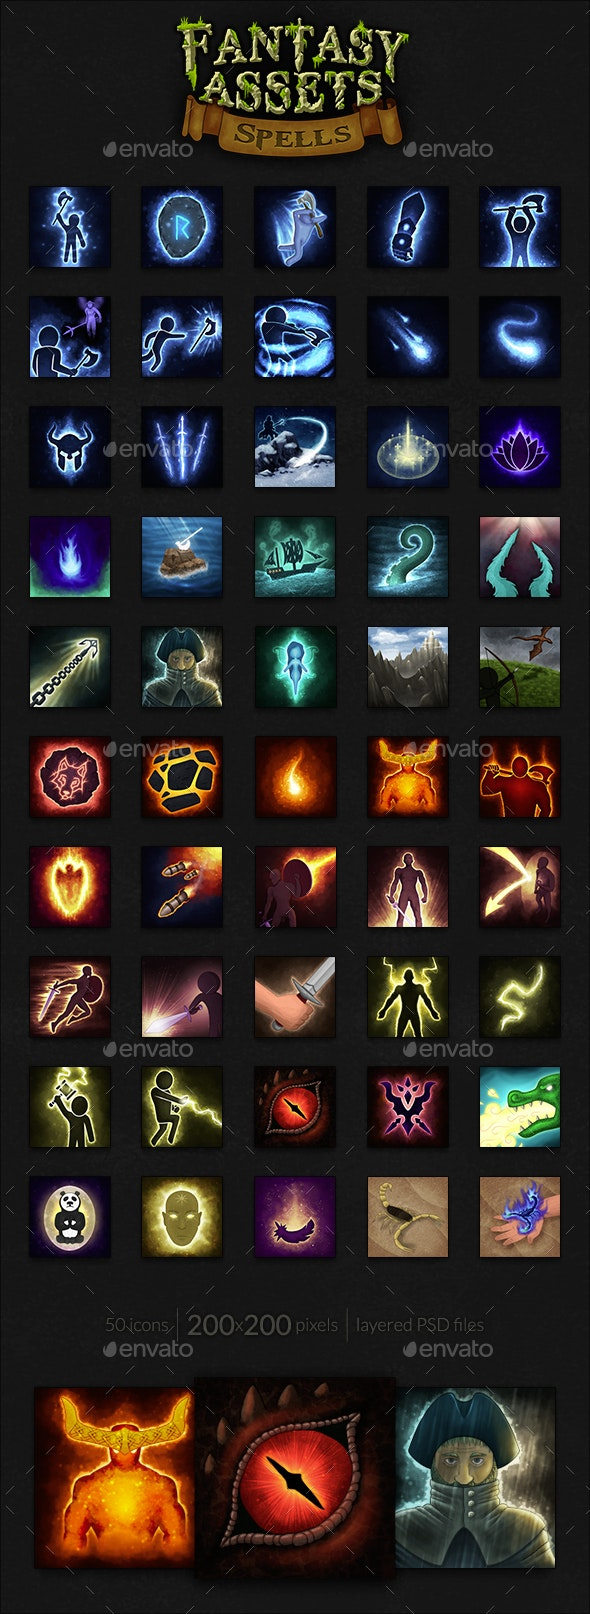 50 Fantasy Spells Icons - Miscellaneous Game Assets